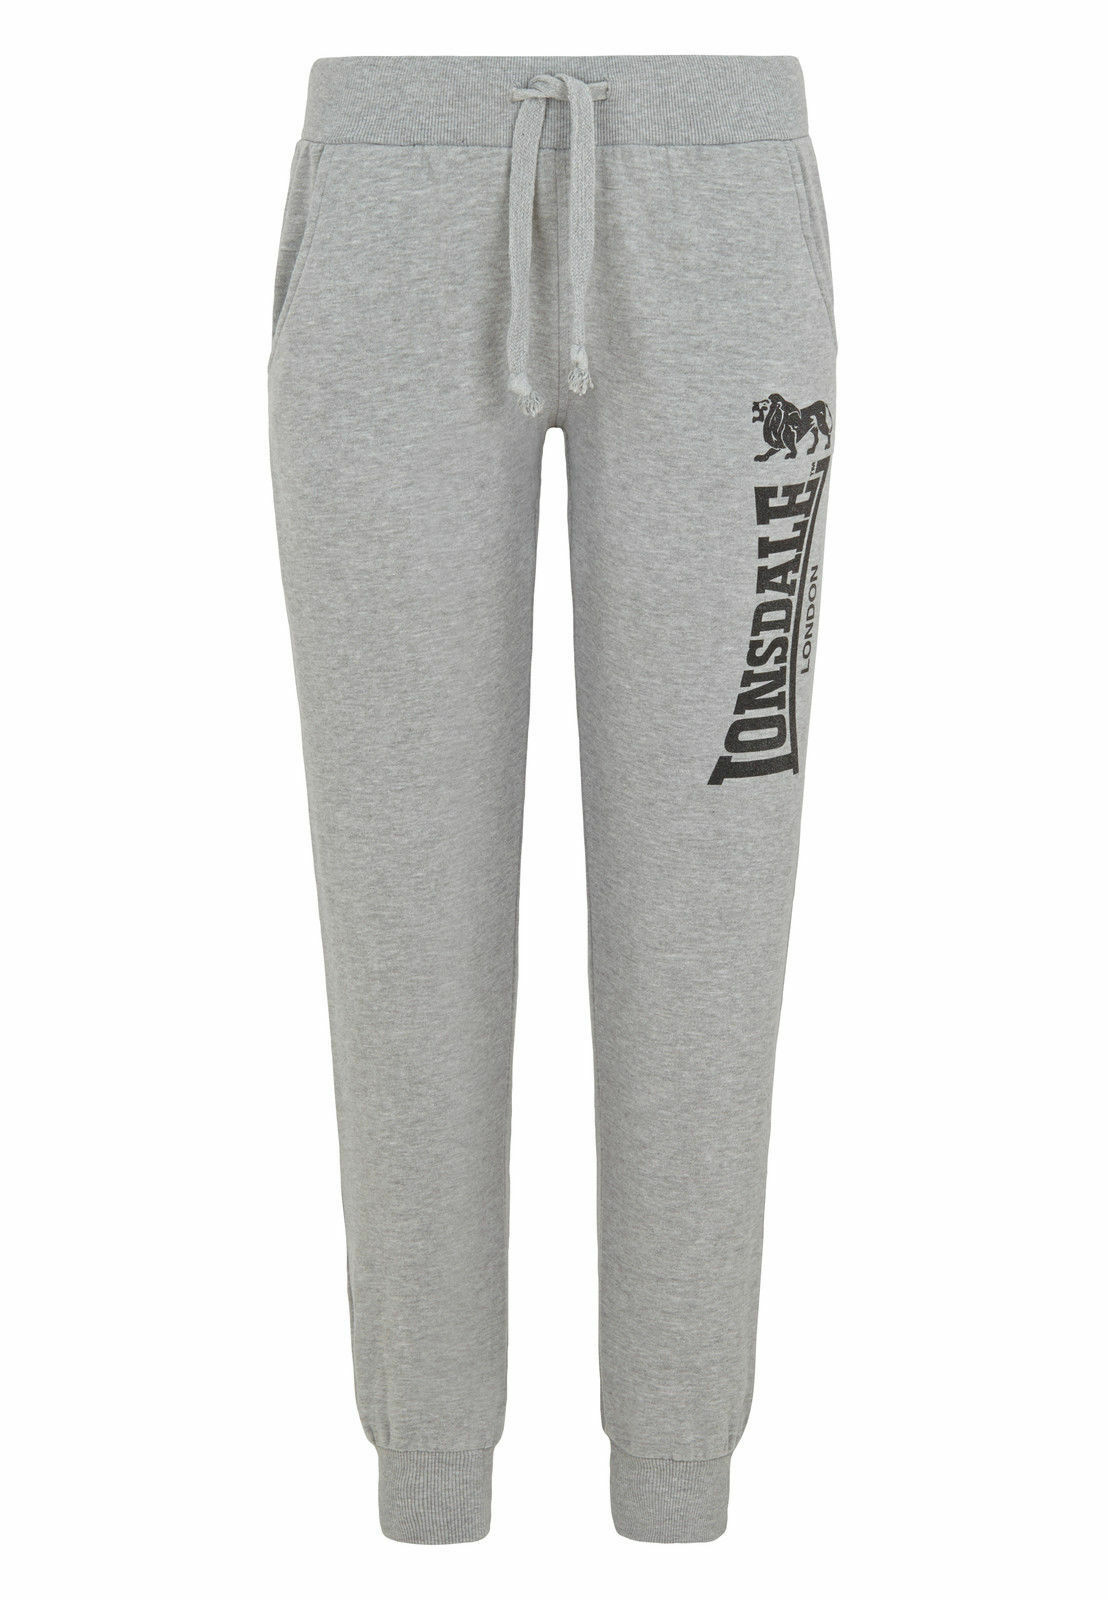 Lonsdale Thurso Jogginghose Ladies Jogging Pants Marl Grey grey